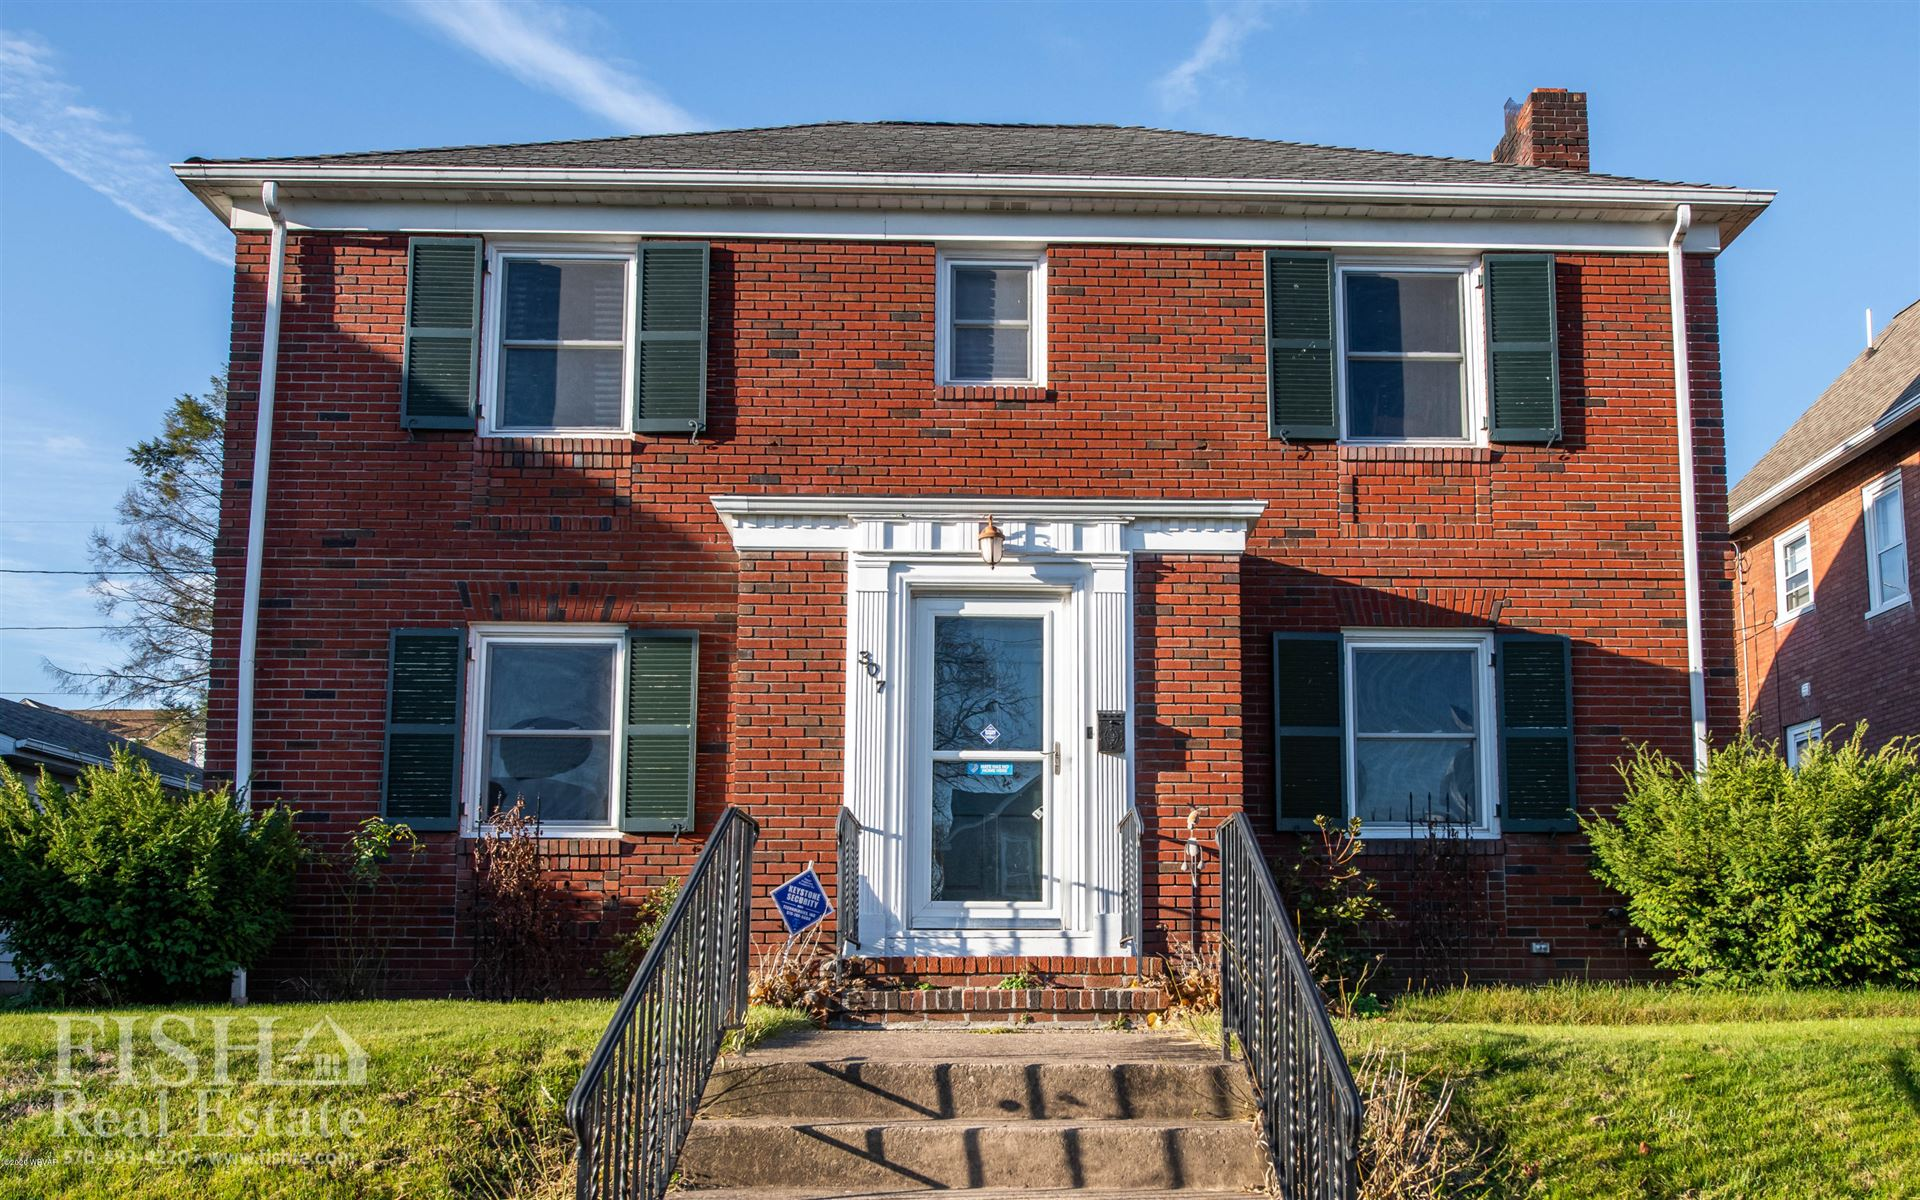 307 S FAIRVIEW STREET, Lock Haven, PA 17745 - #: WB-91620